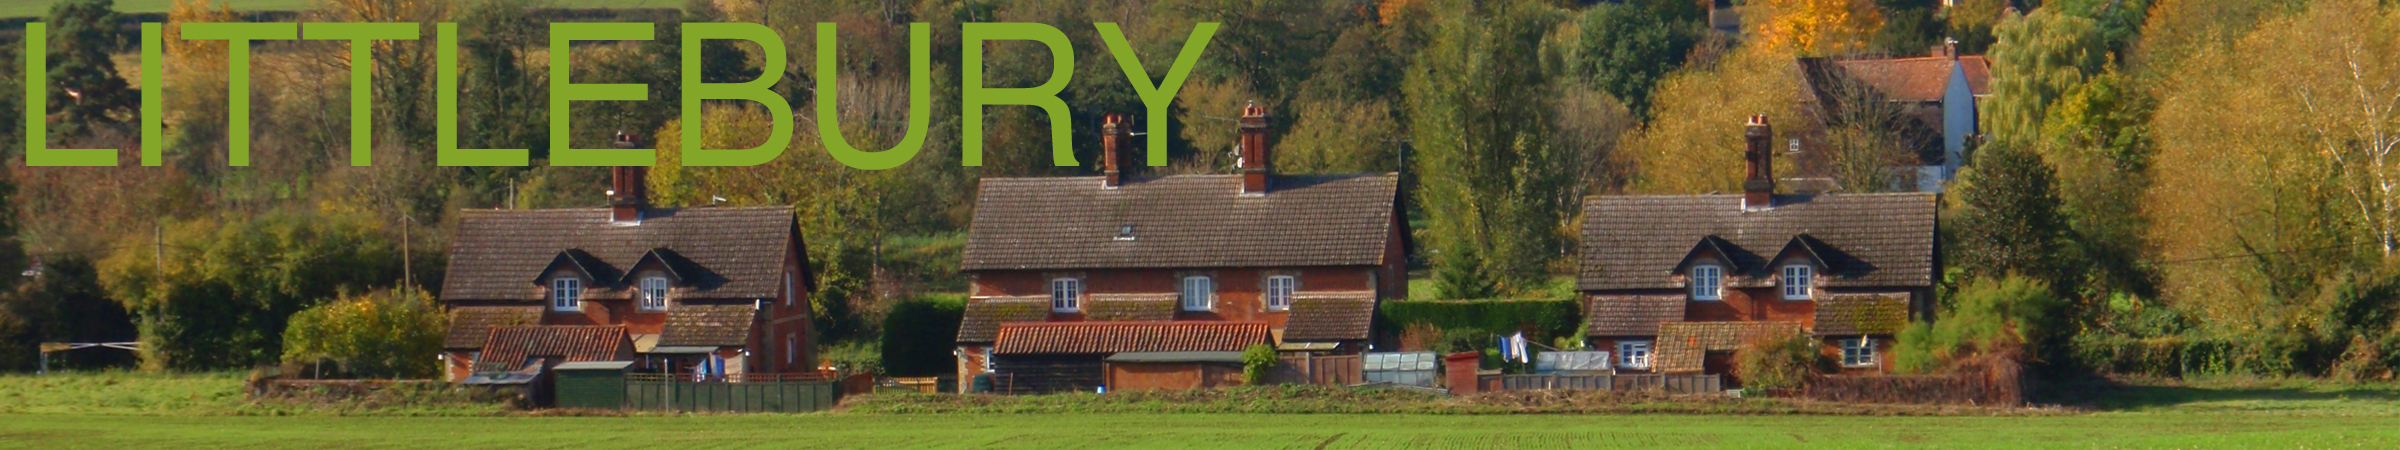 Littlebury Website Banner - March